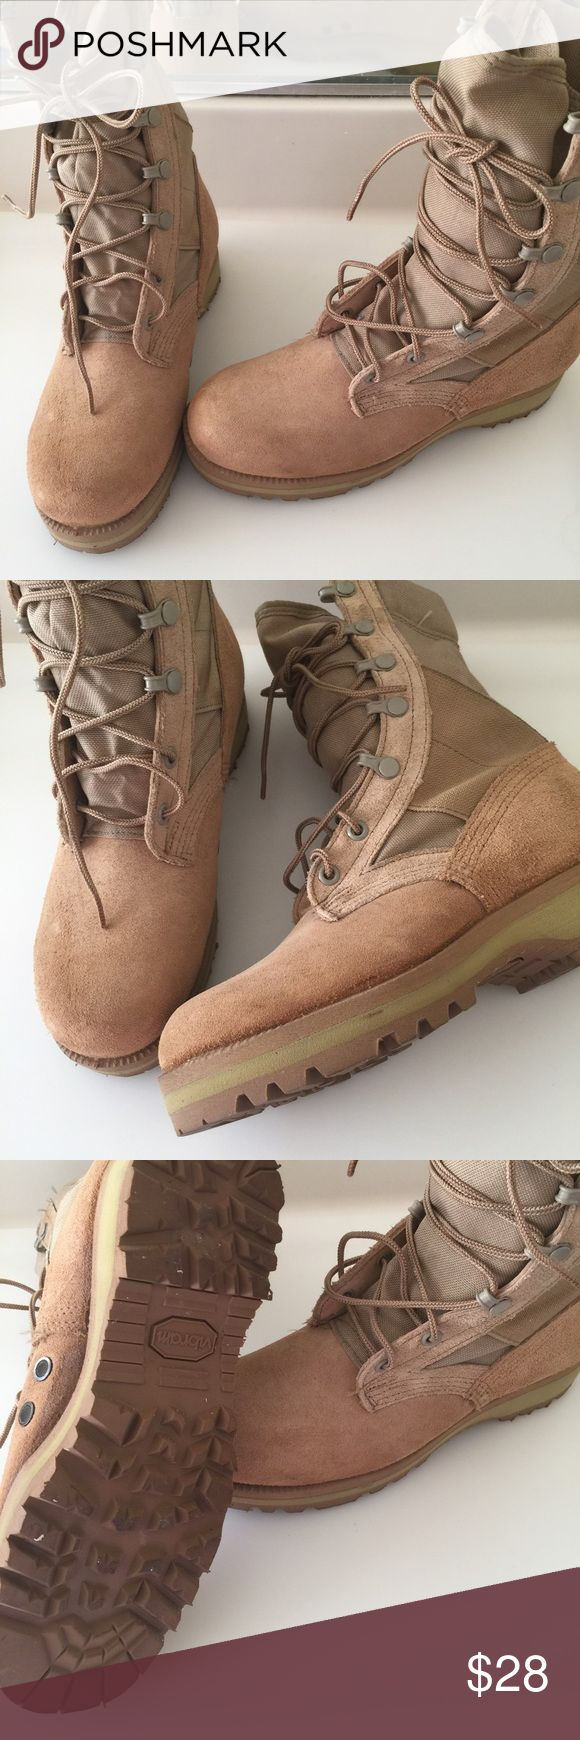 Wellco Desert  Steel Boots Wellco Desert Combat Boots.  Vibram soles,  hard toe might be steel toe,  in excellent preowned condition. Size 7.5 wellco Shoes Boots